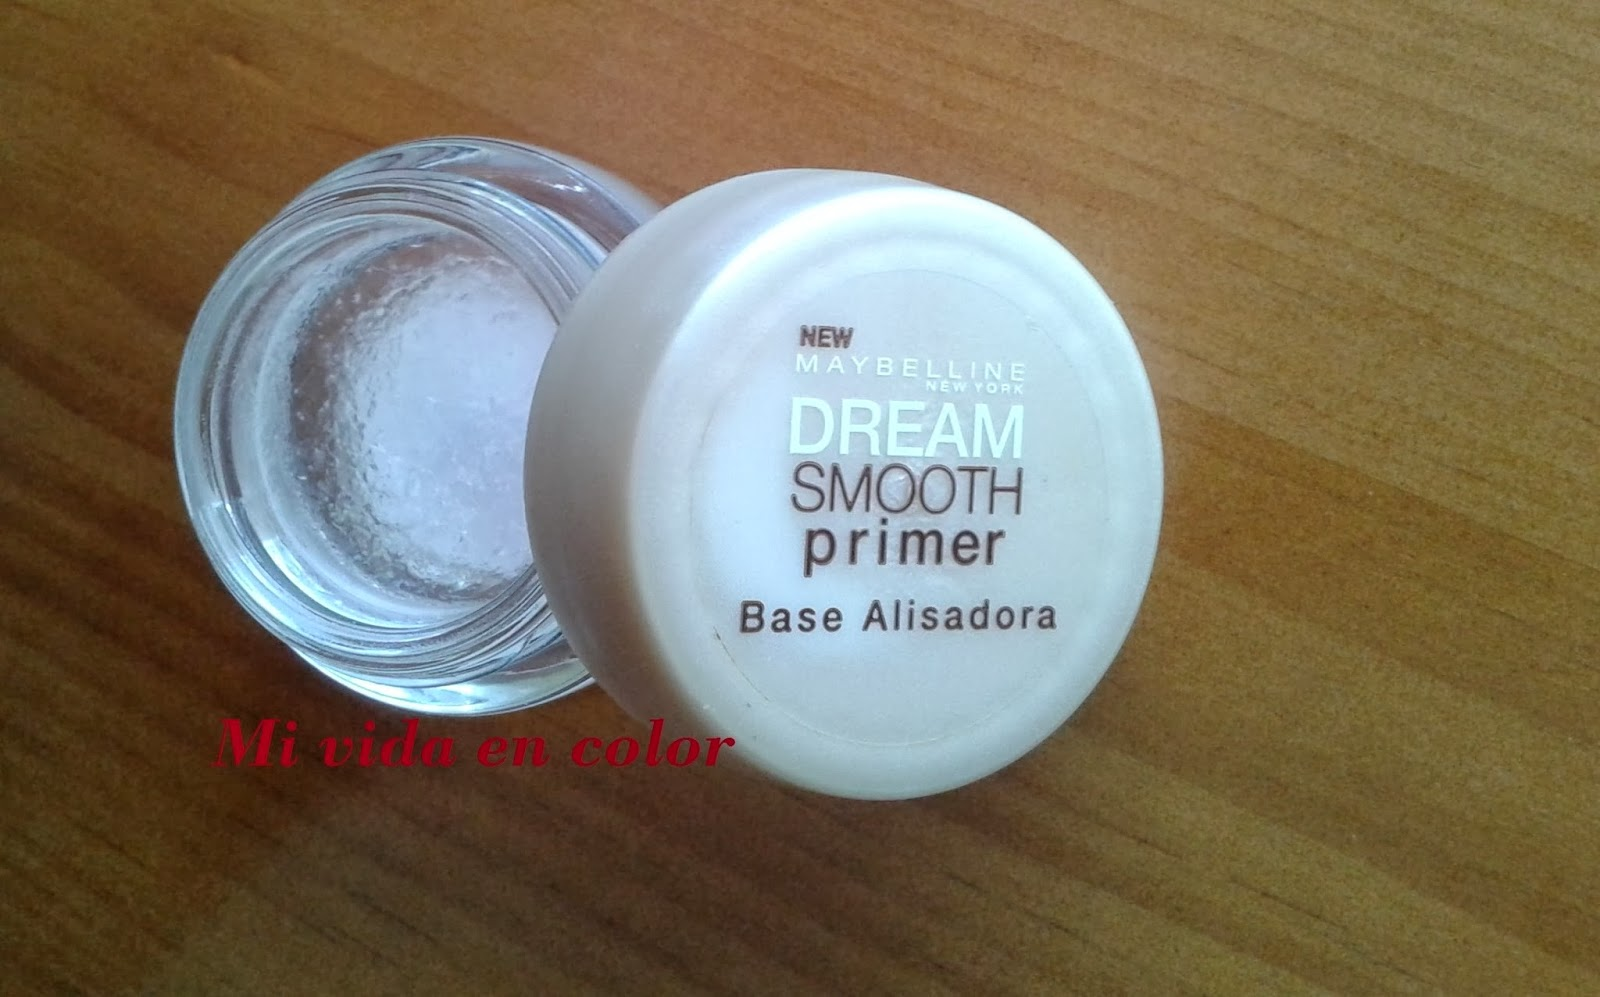 Maybelline Dream Sooth primer. Base alisadora